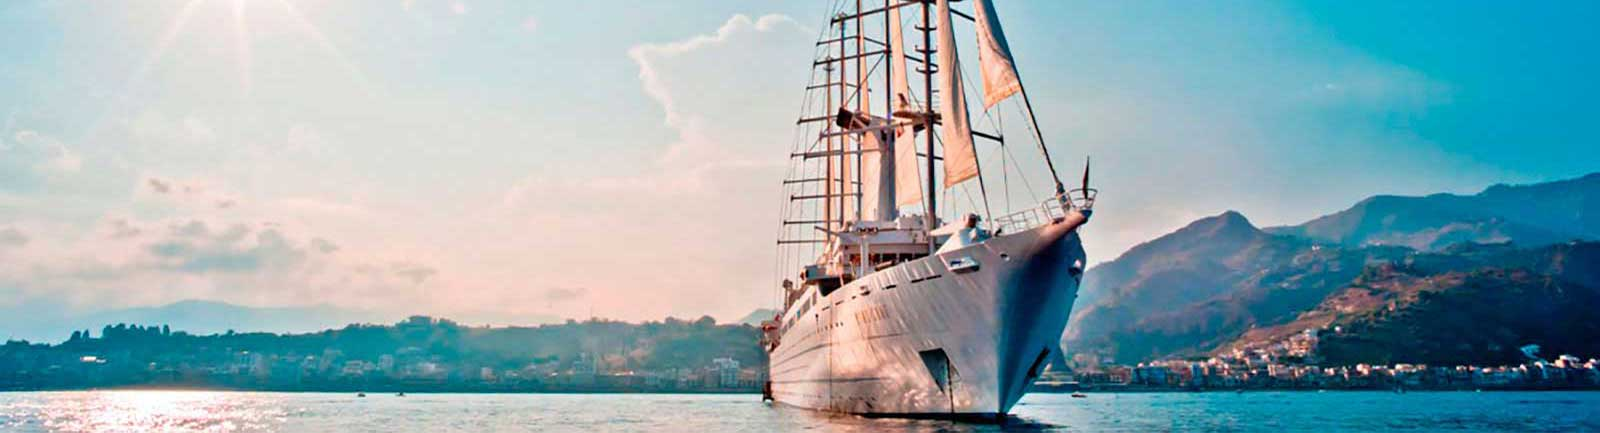 Crucerum Windstar Cruises